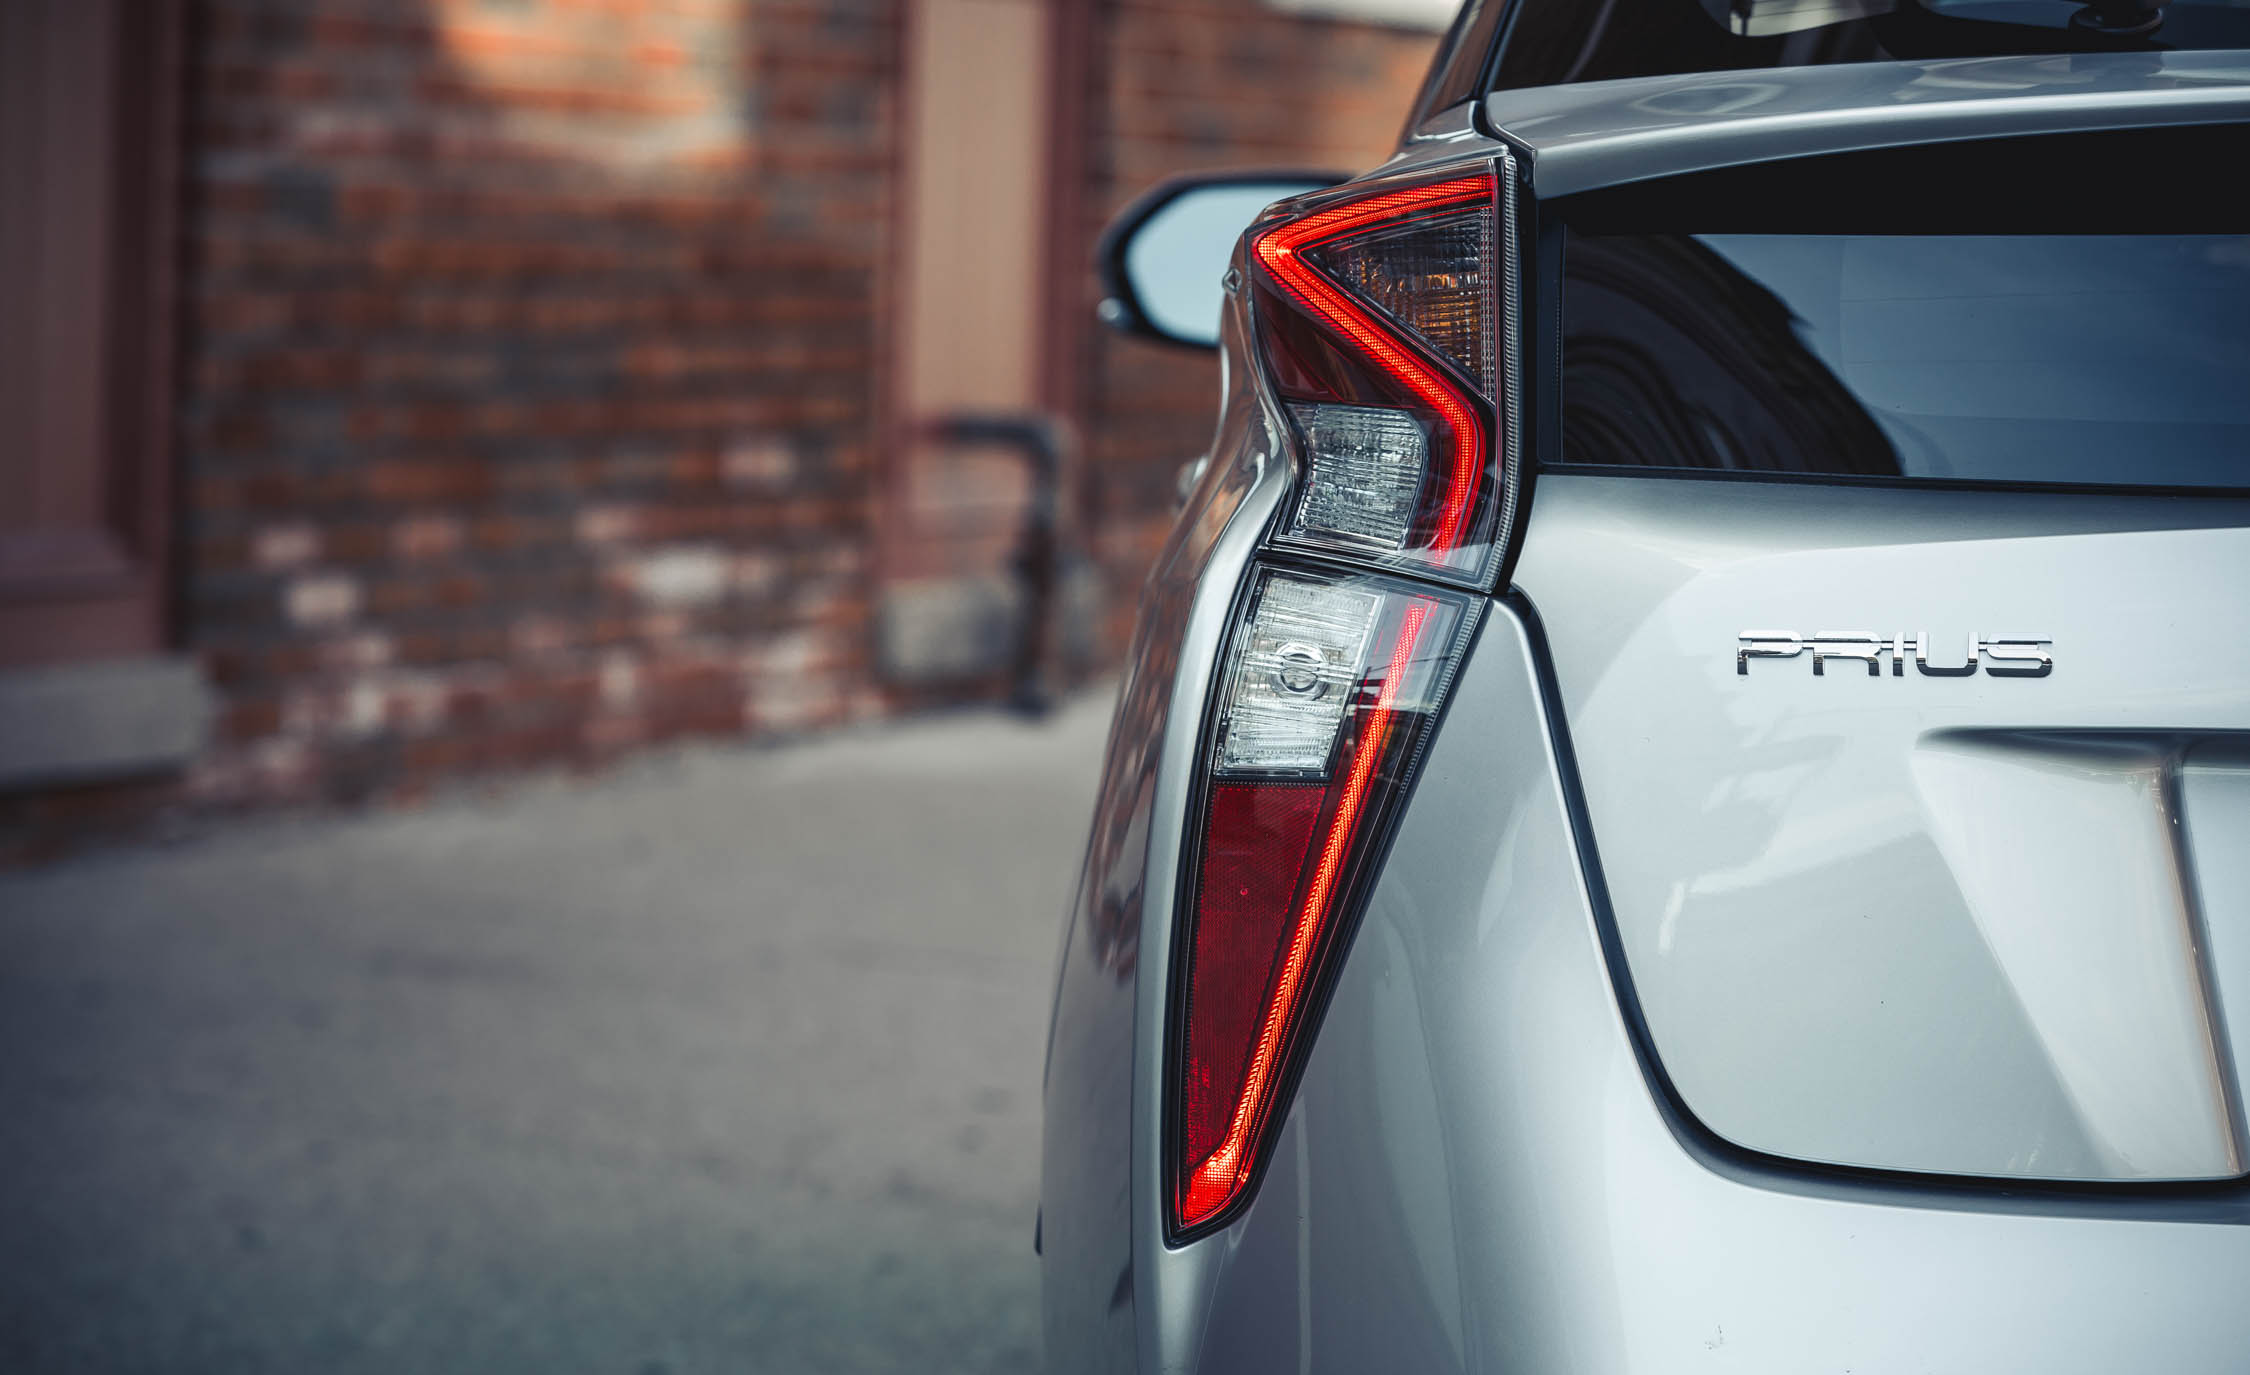 2017 Toyota Prius Exterior View Taillight (Photo 38 of 64)